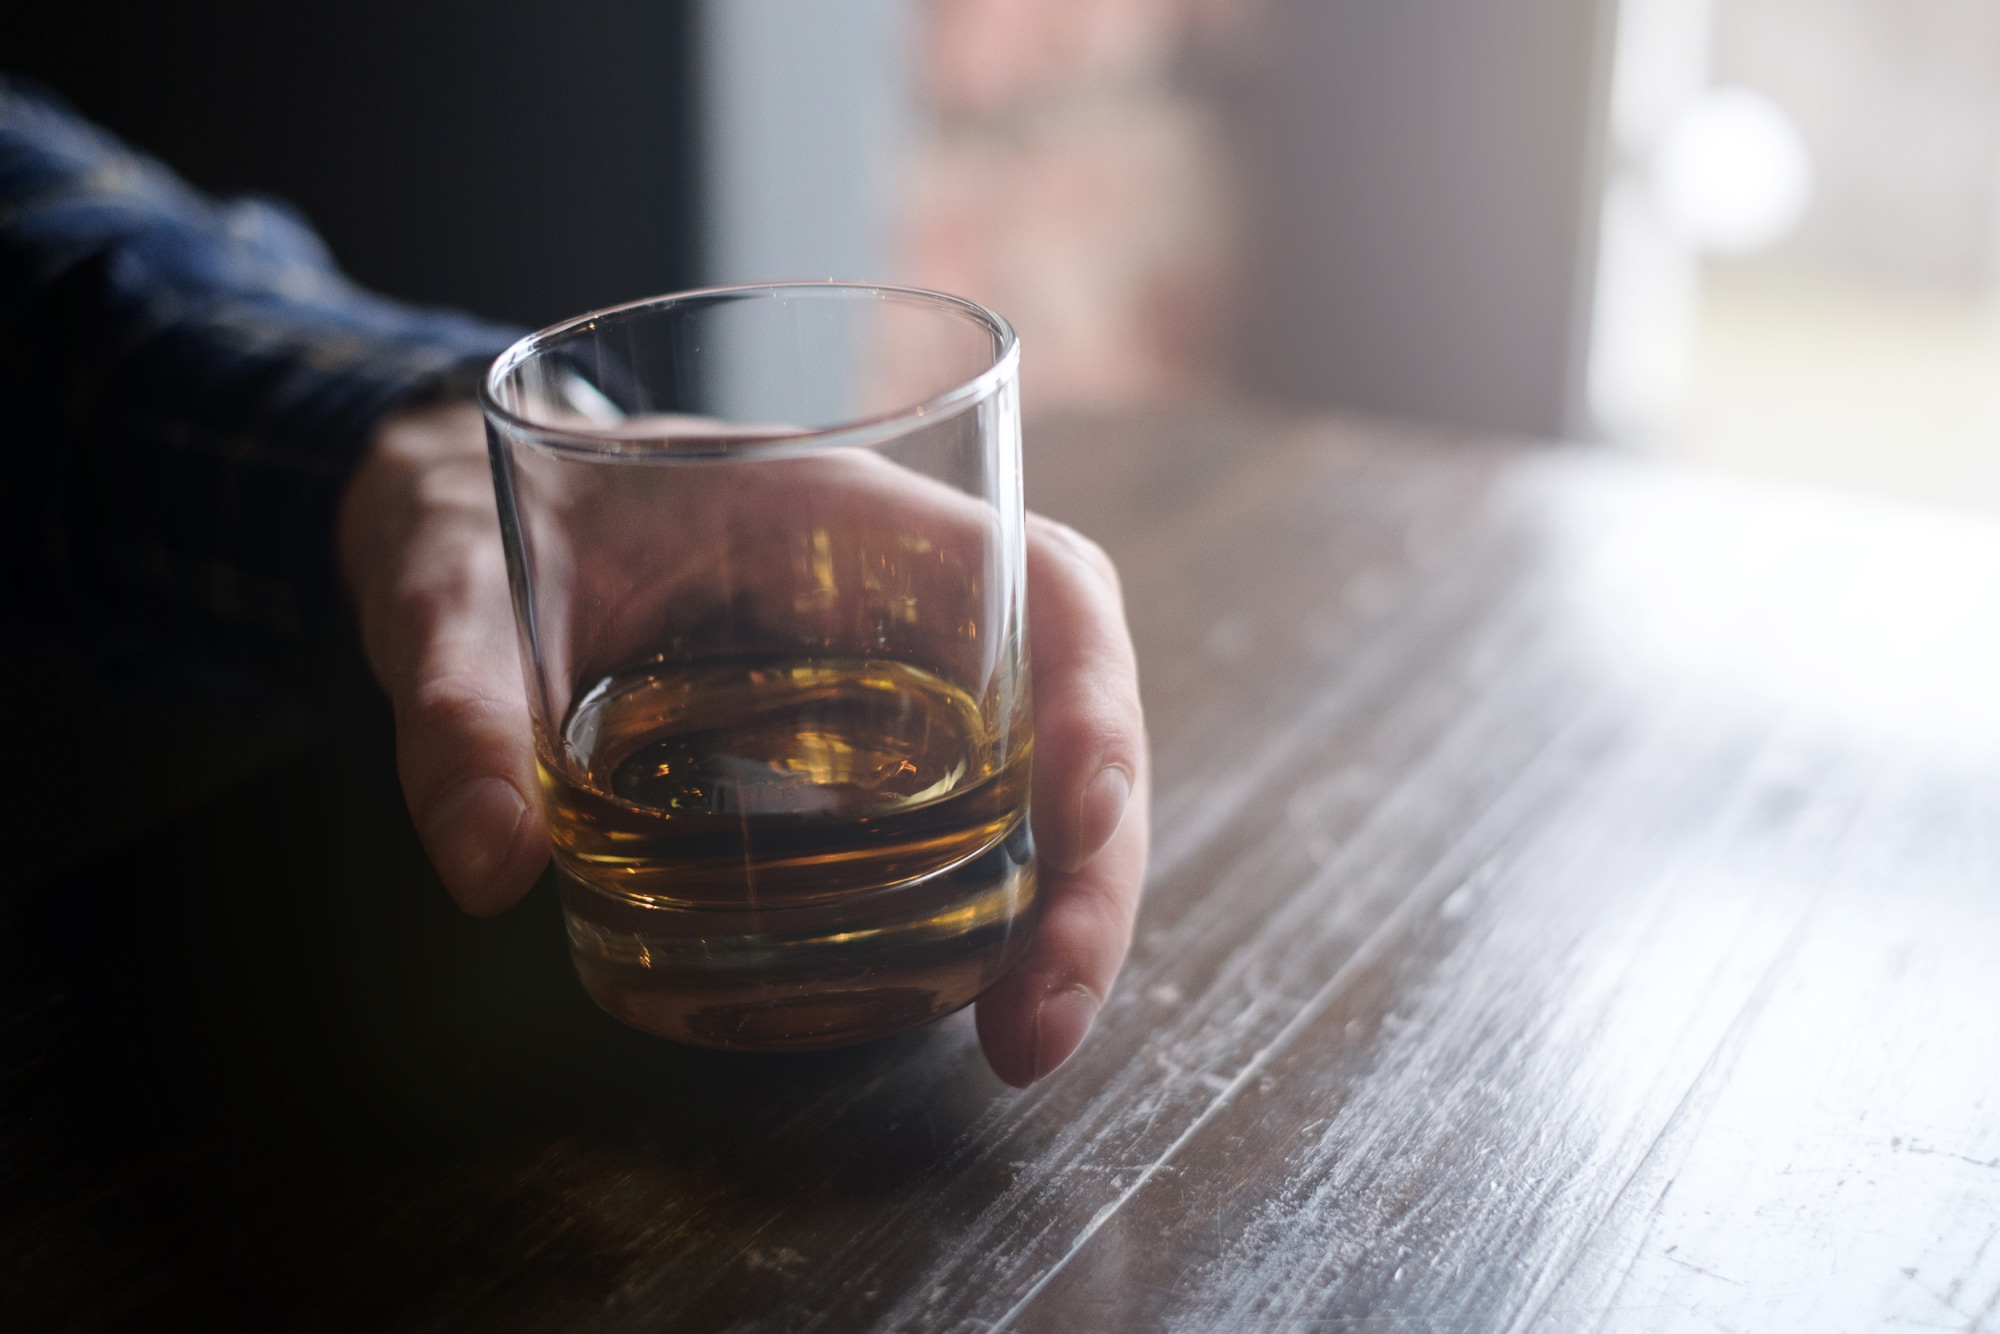 Alcohol-related disease overtakes hepatitis C as top reason for liver transplant